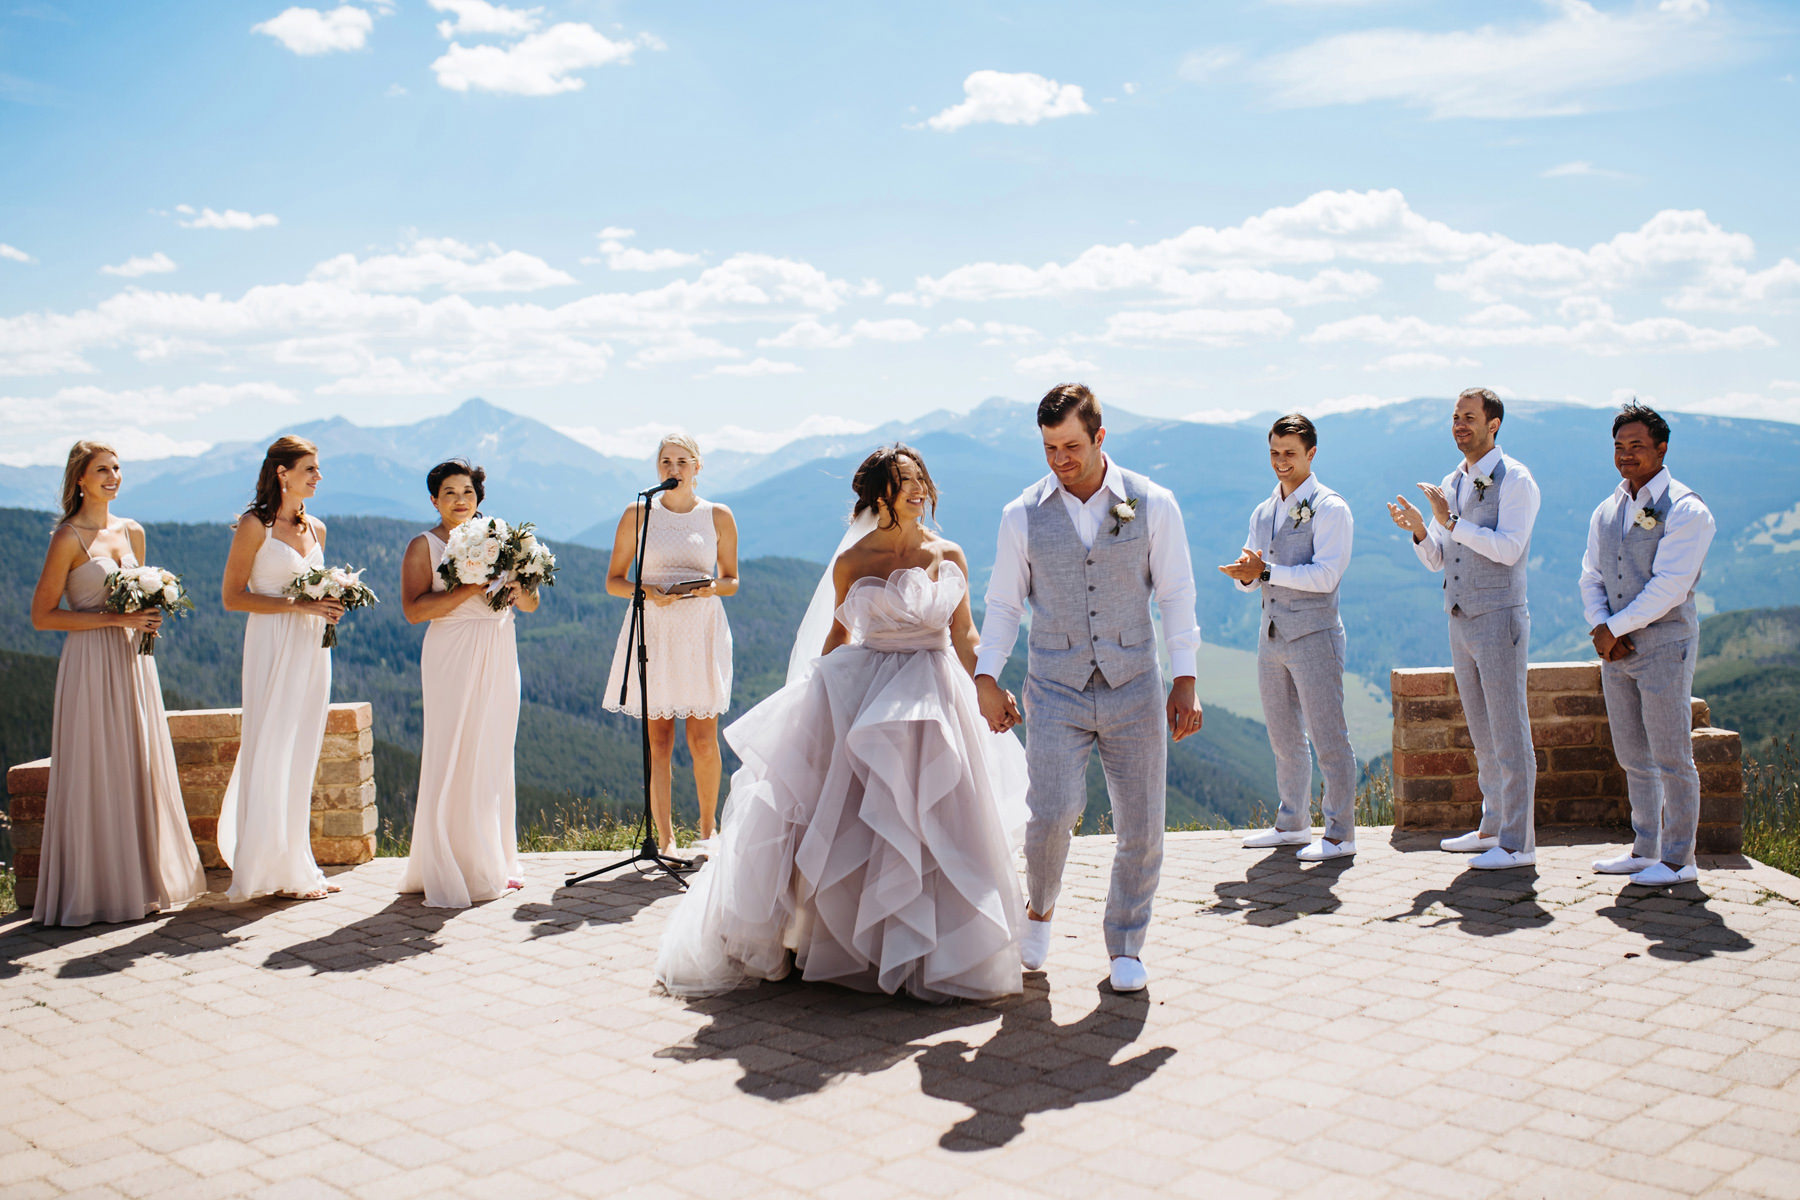 2_Vail Wedding Deck Mountain Top Wedding Vail, Colorado_Kindling Wedding Photography.JPG